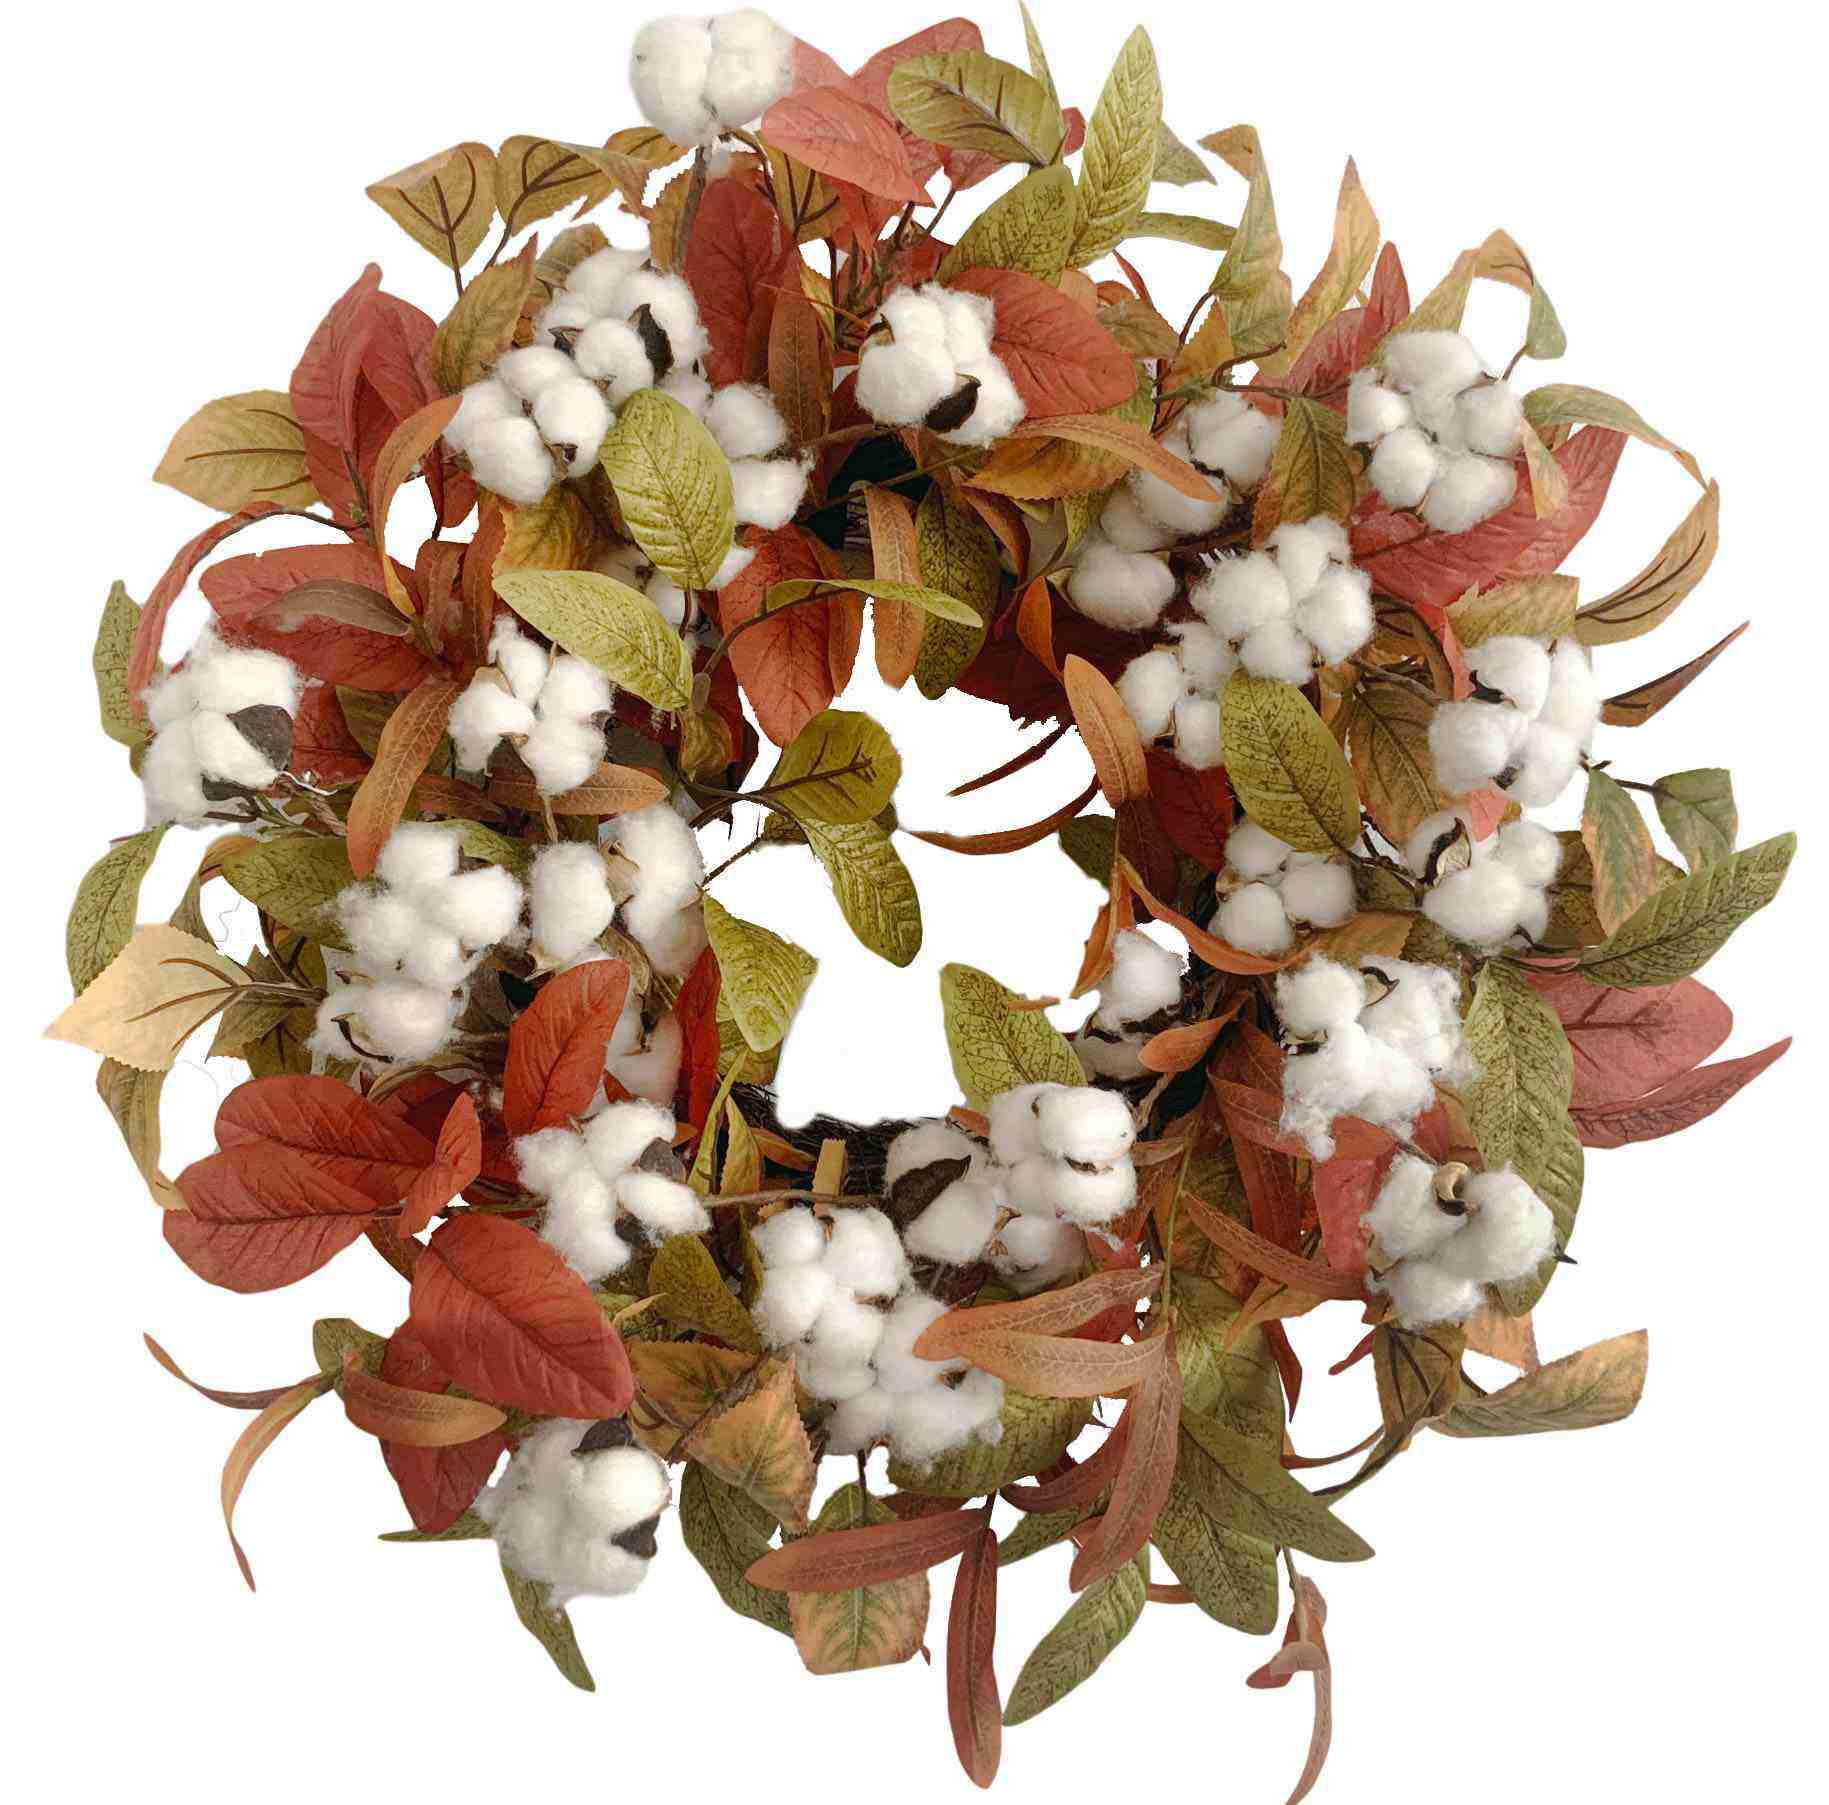 Plastic Fall Olive Magnolia Leaves & Cotton Autumn Harvest Wreath Craft Supplies Wreaths With Low Price